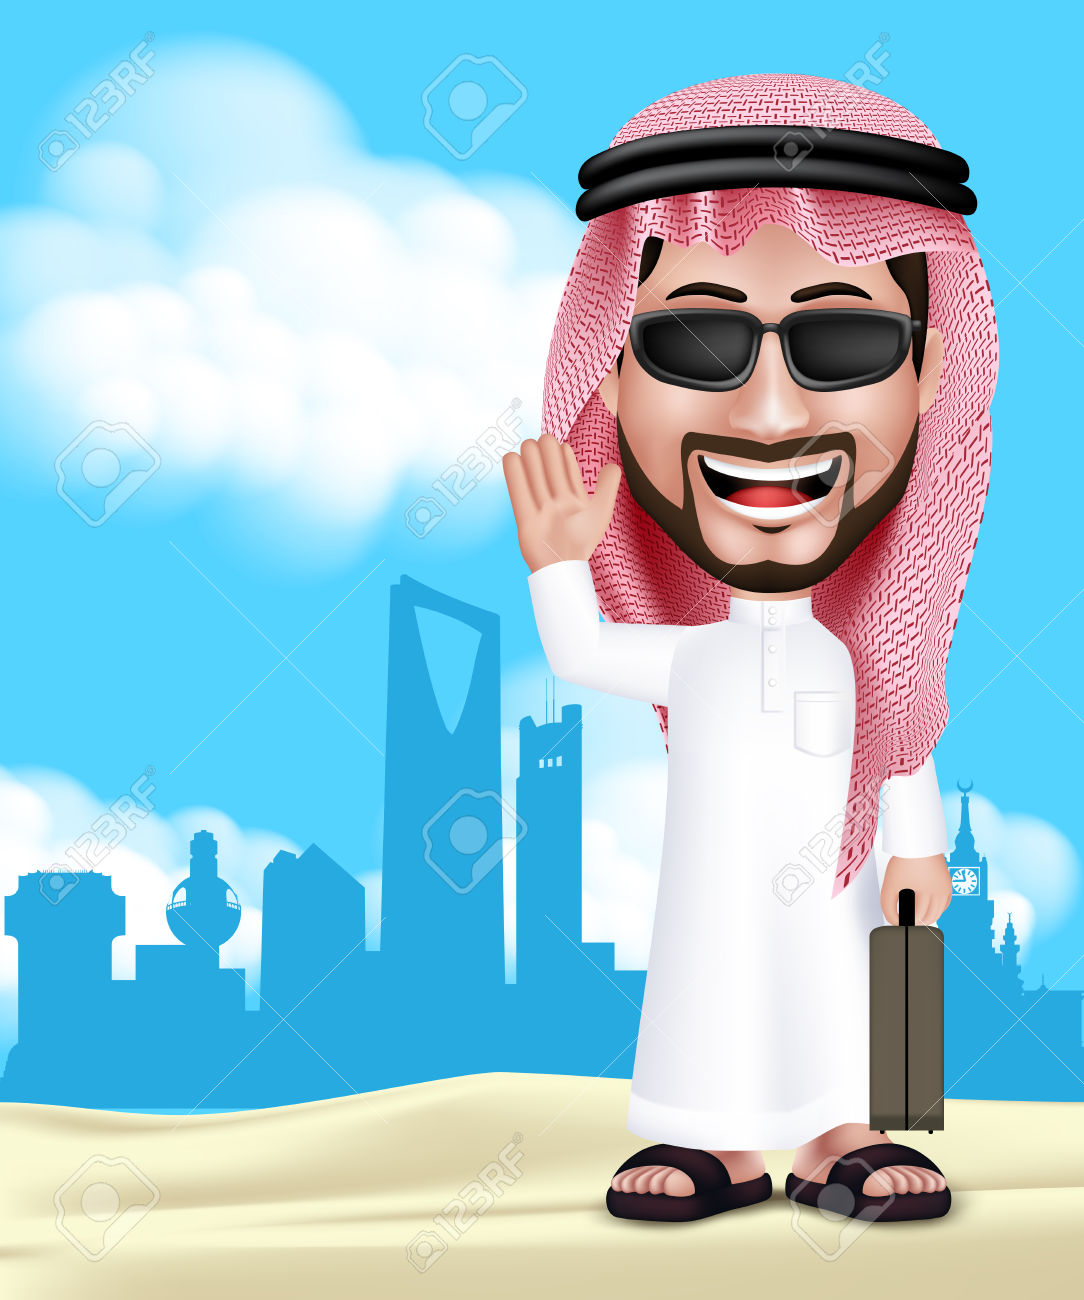 40547847-Realistic-3D-Handsome-Saudi-Arab-Man-Wearing-Thobe-and-Sunglasses-Standing-Happy-With-Traveling-Bag--Stock-Vector